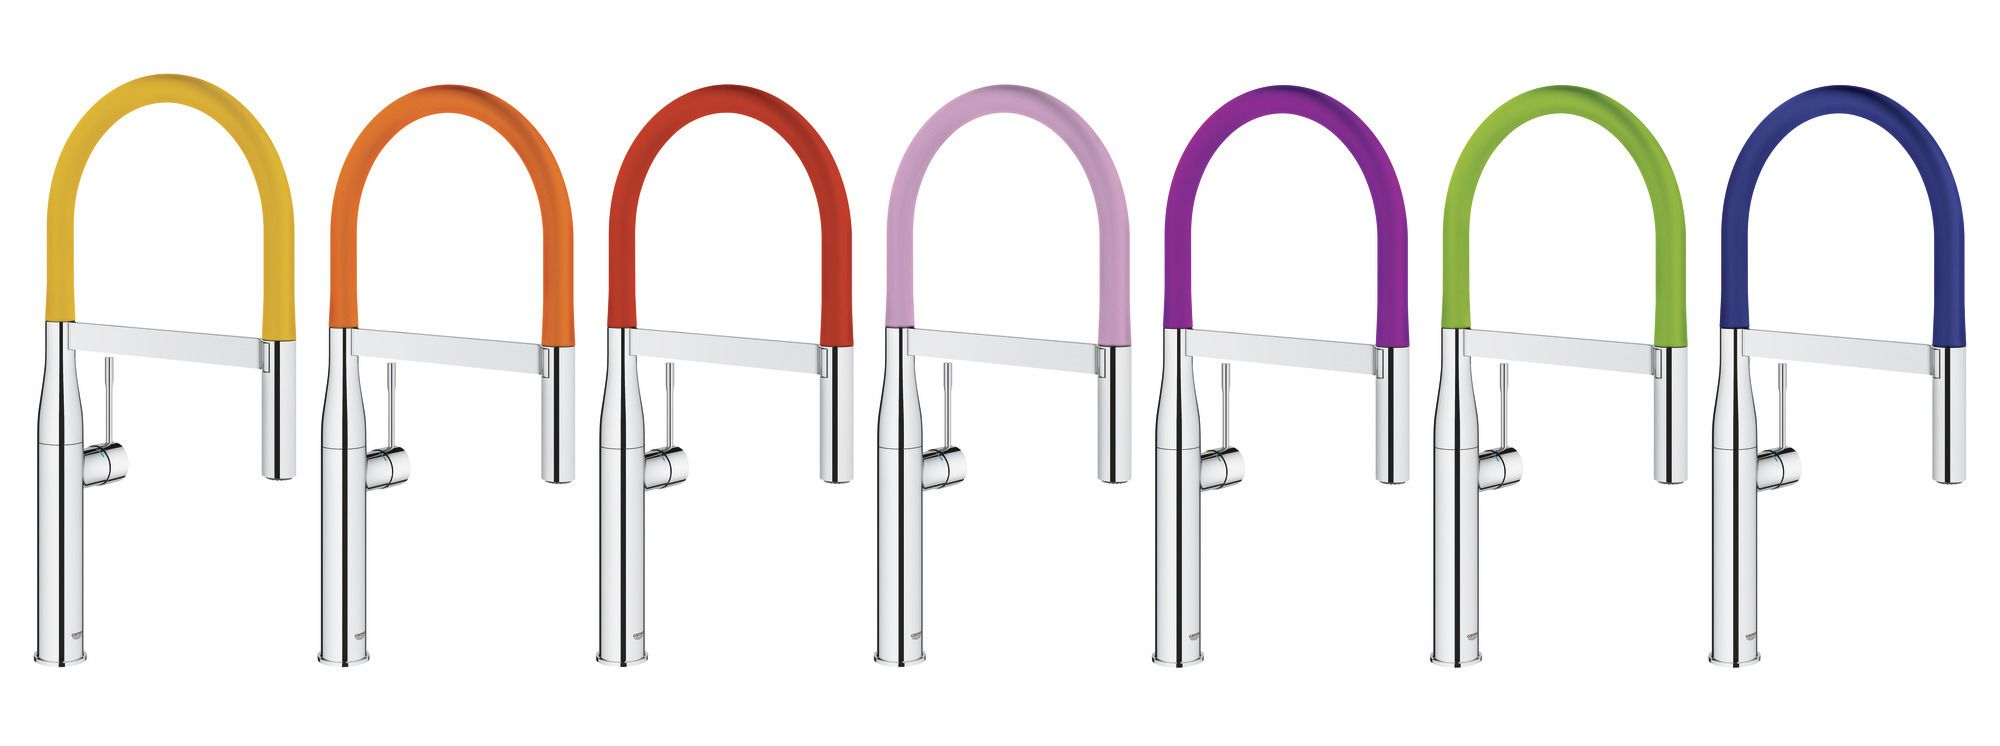 Grohe Launches Colorful Faucet Collection | Kitchen faucets, Faucet ...